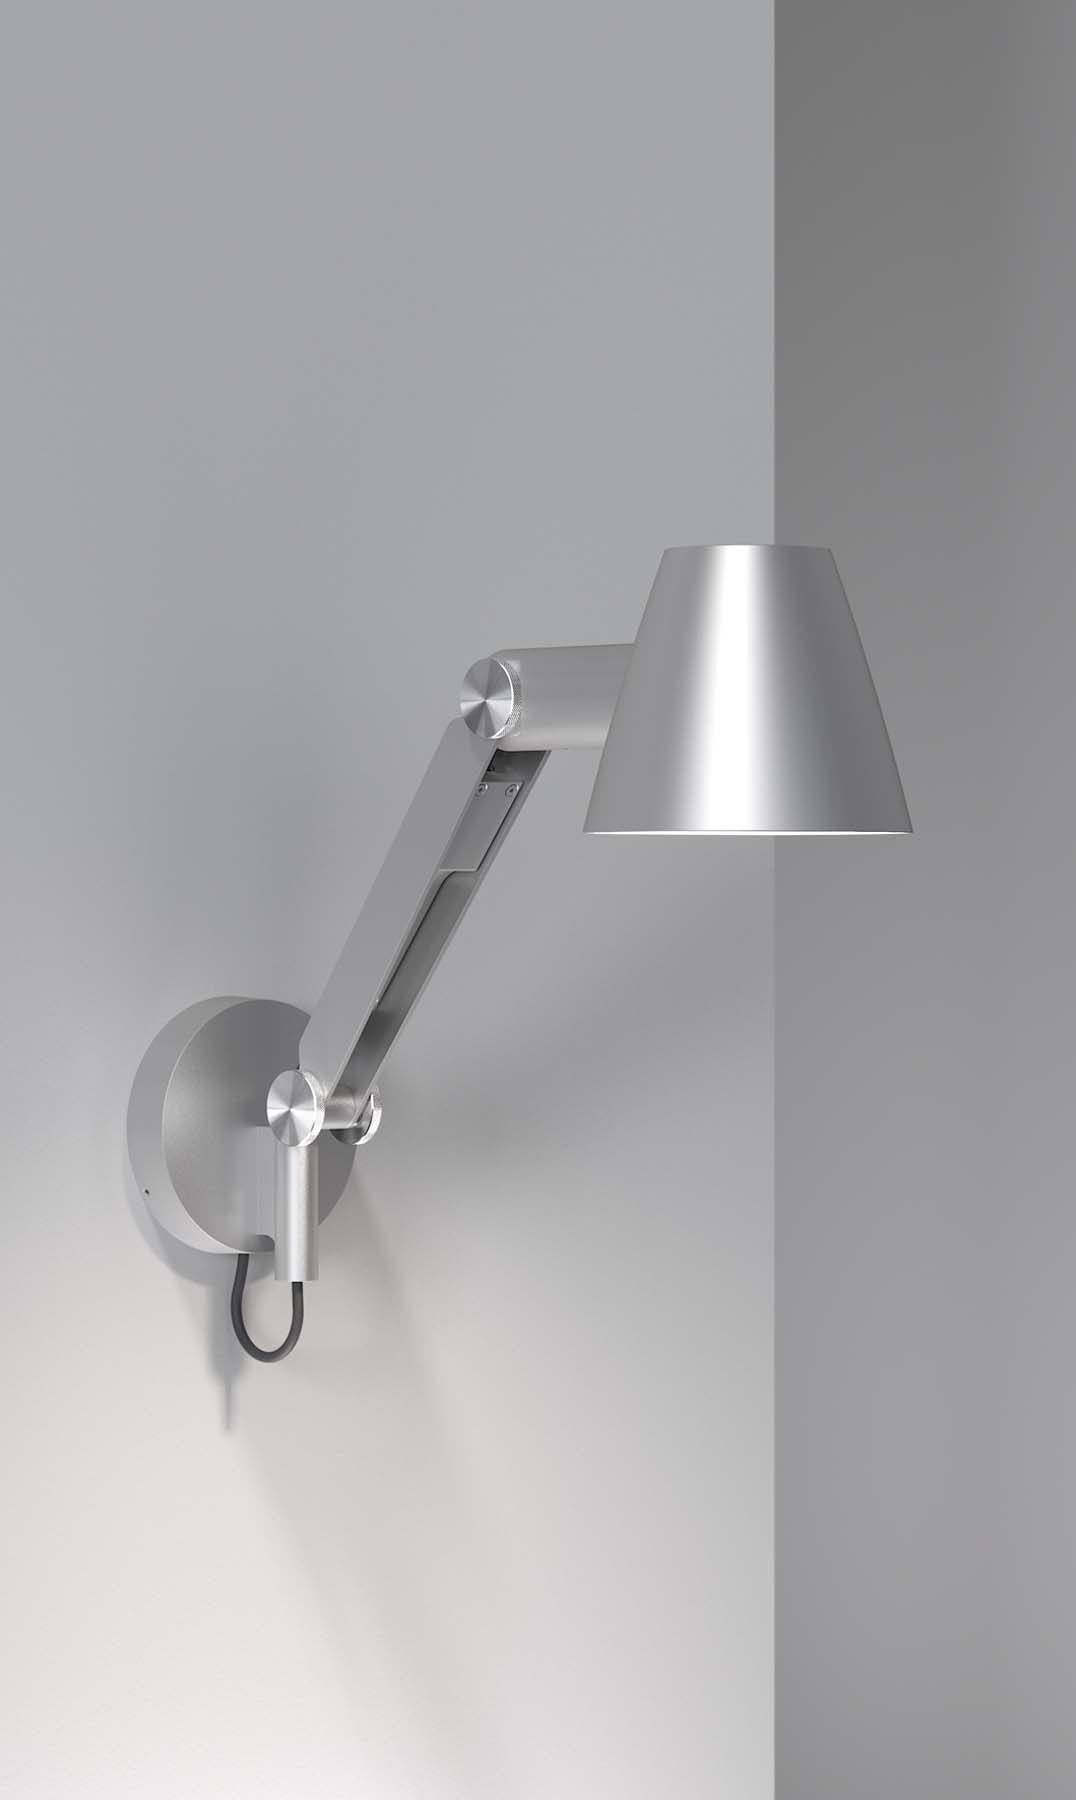 Cult   Wall lamp from Nordlux   Designed by Bønnelycke mdd   Nordic and Scandinavian style   Produced in silver grey metal   Light   Decoration   Designed in Denmark